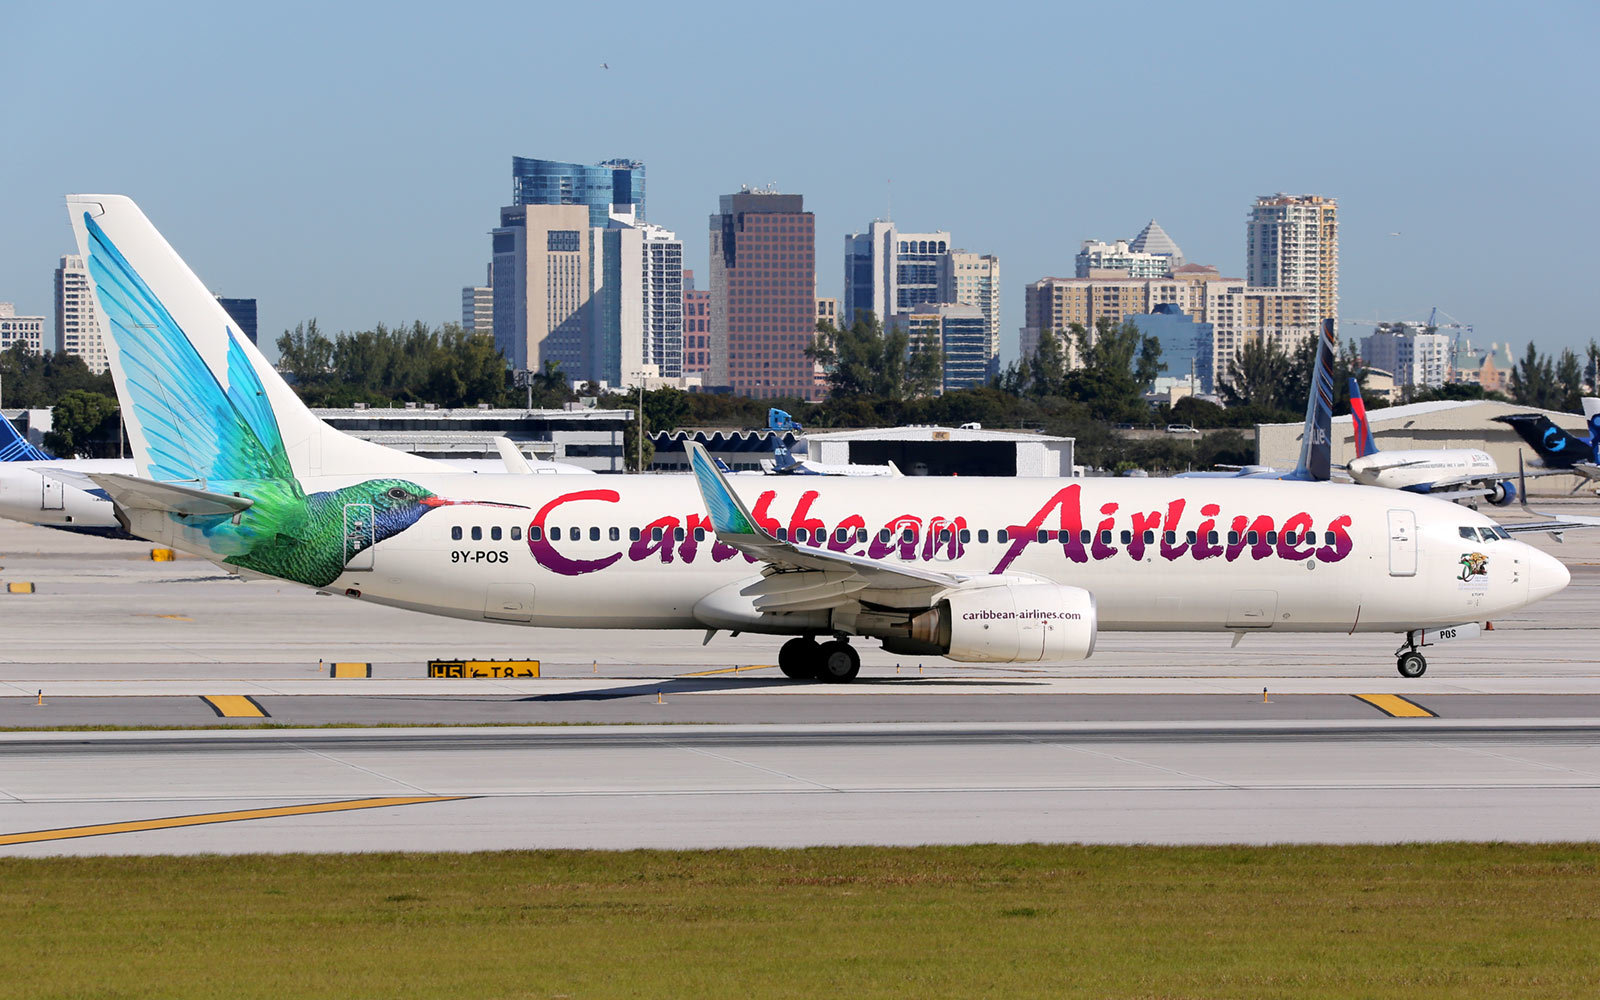 Caribbean Airlines at the Fort Lauderdale Airport